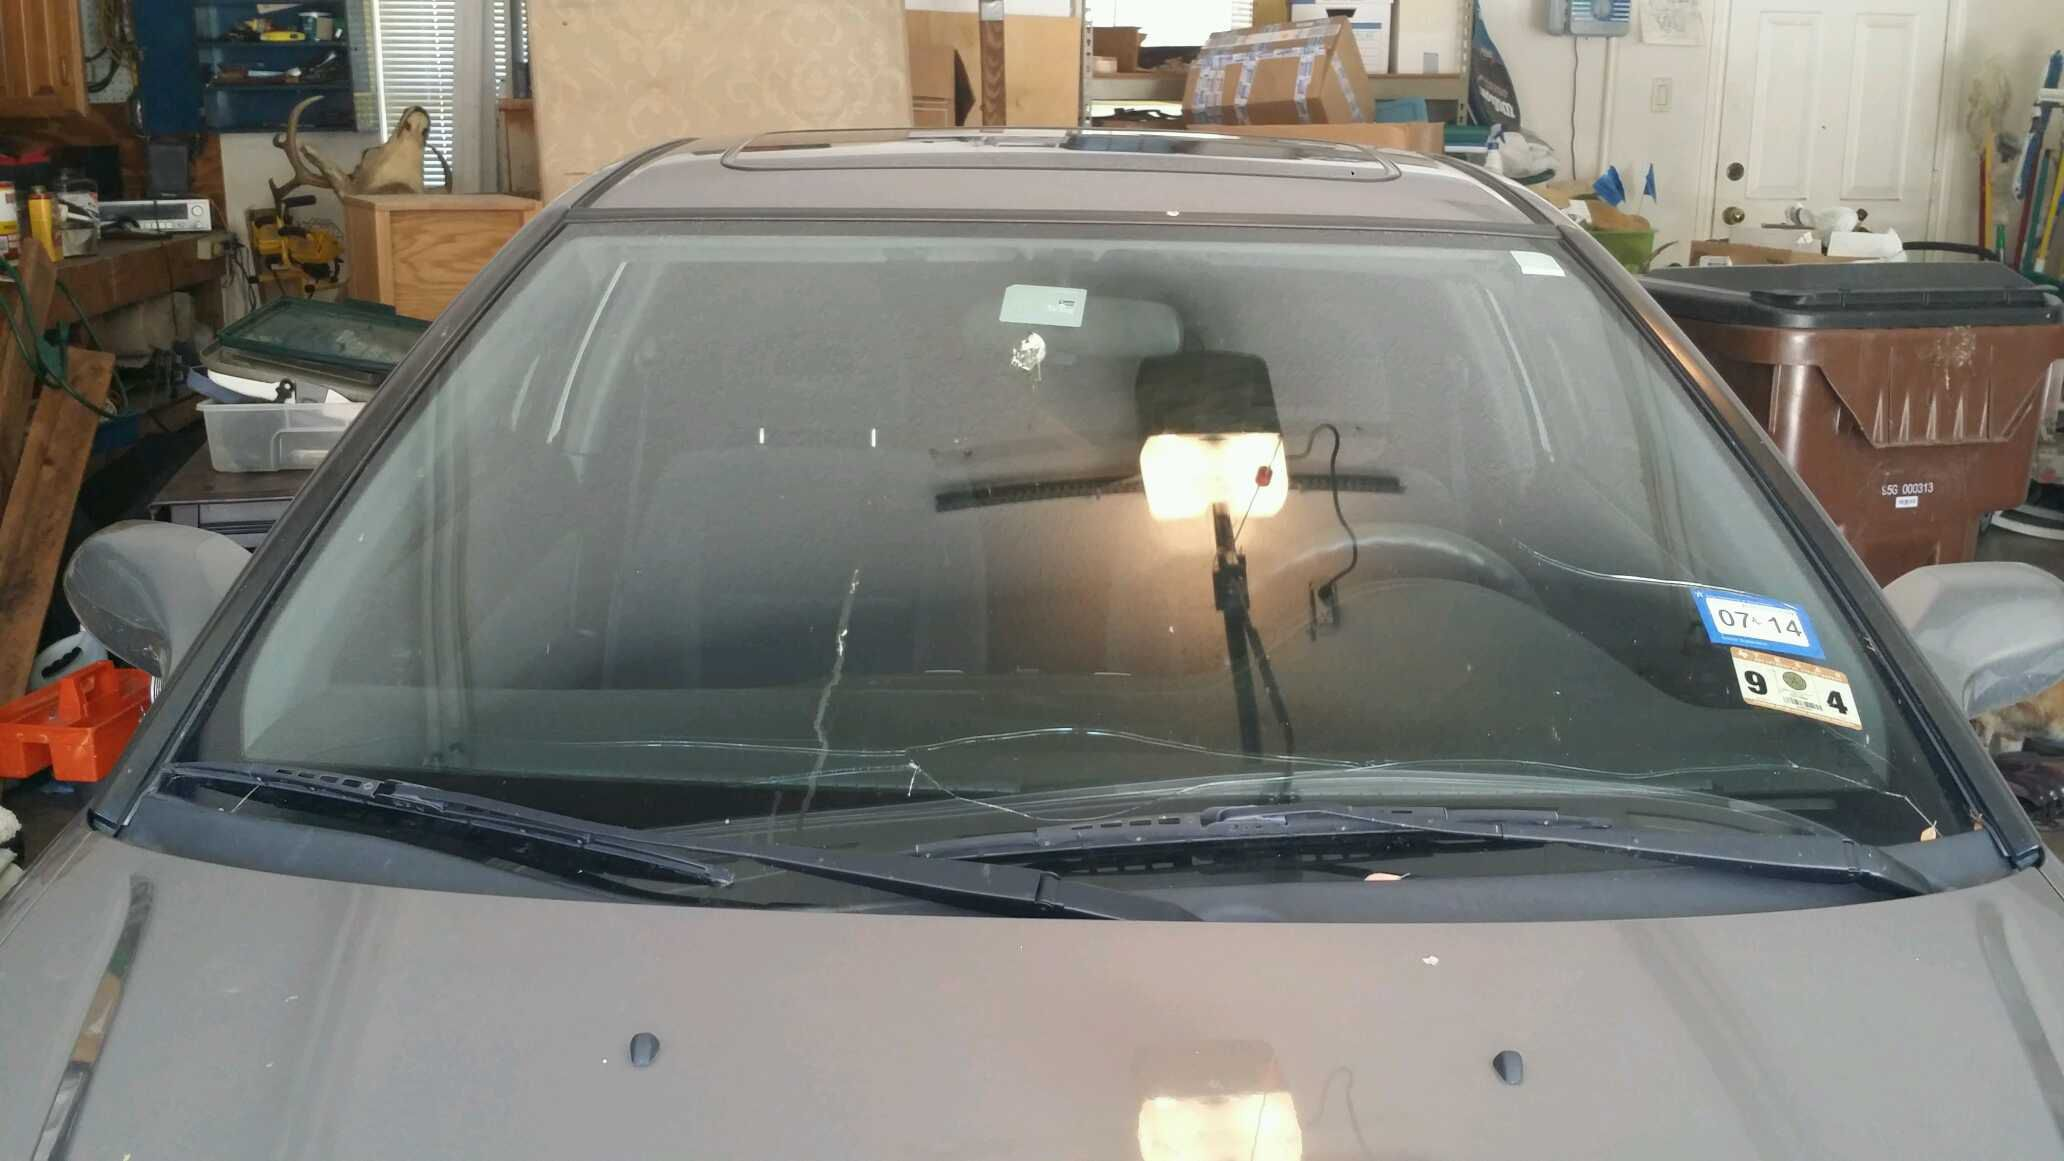 2004 honda civic 4 door sedan windshield for Honda civic windshield replacement cost